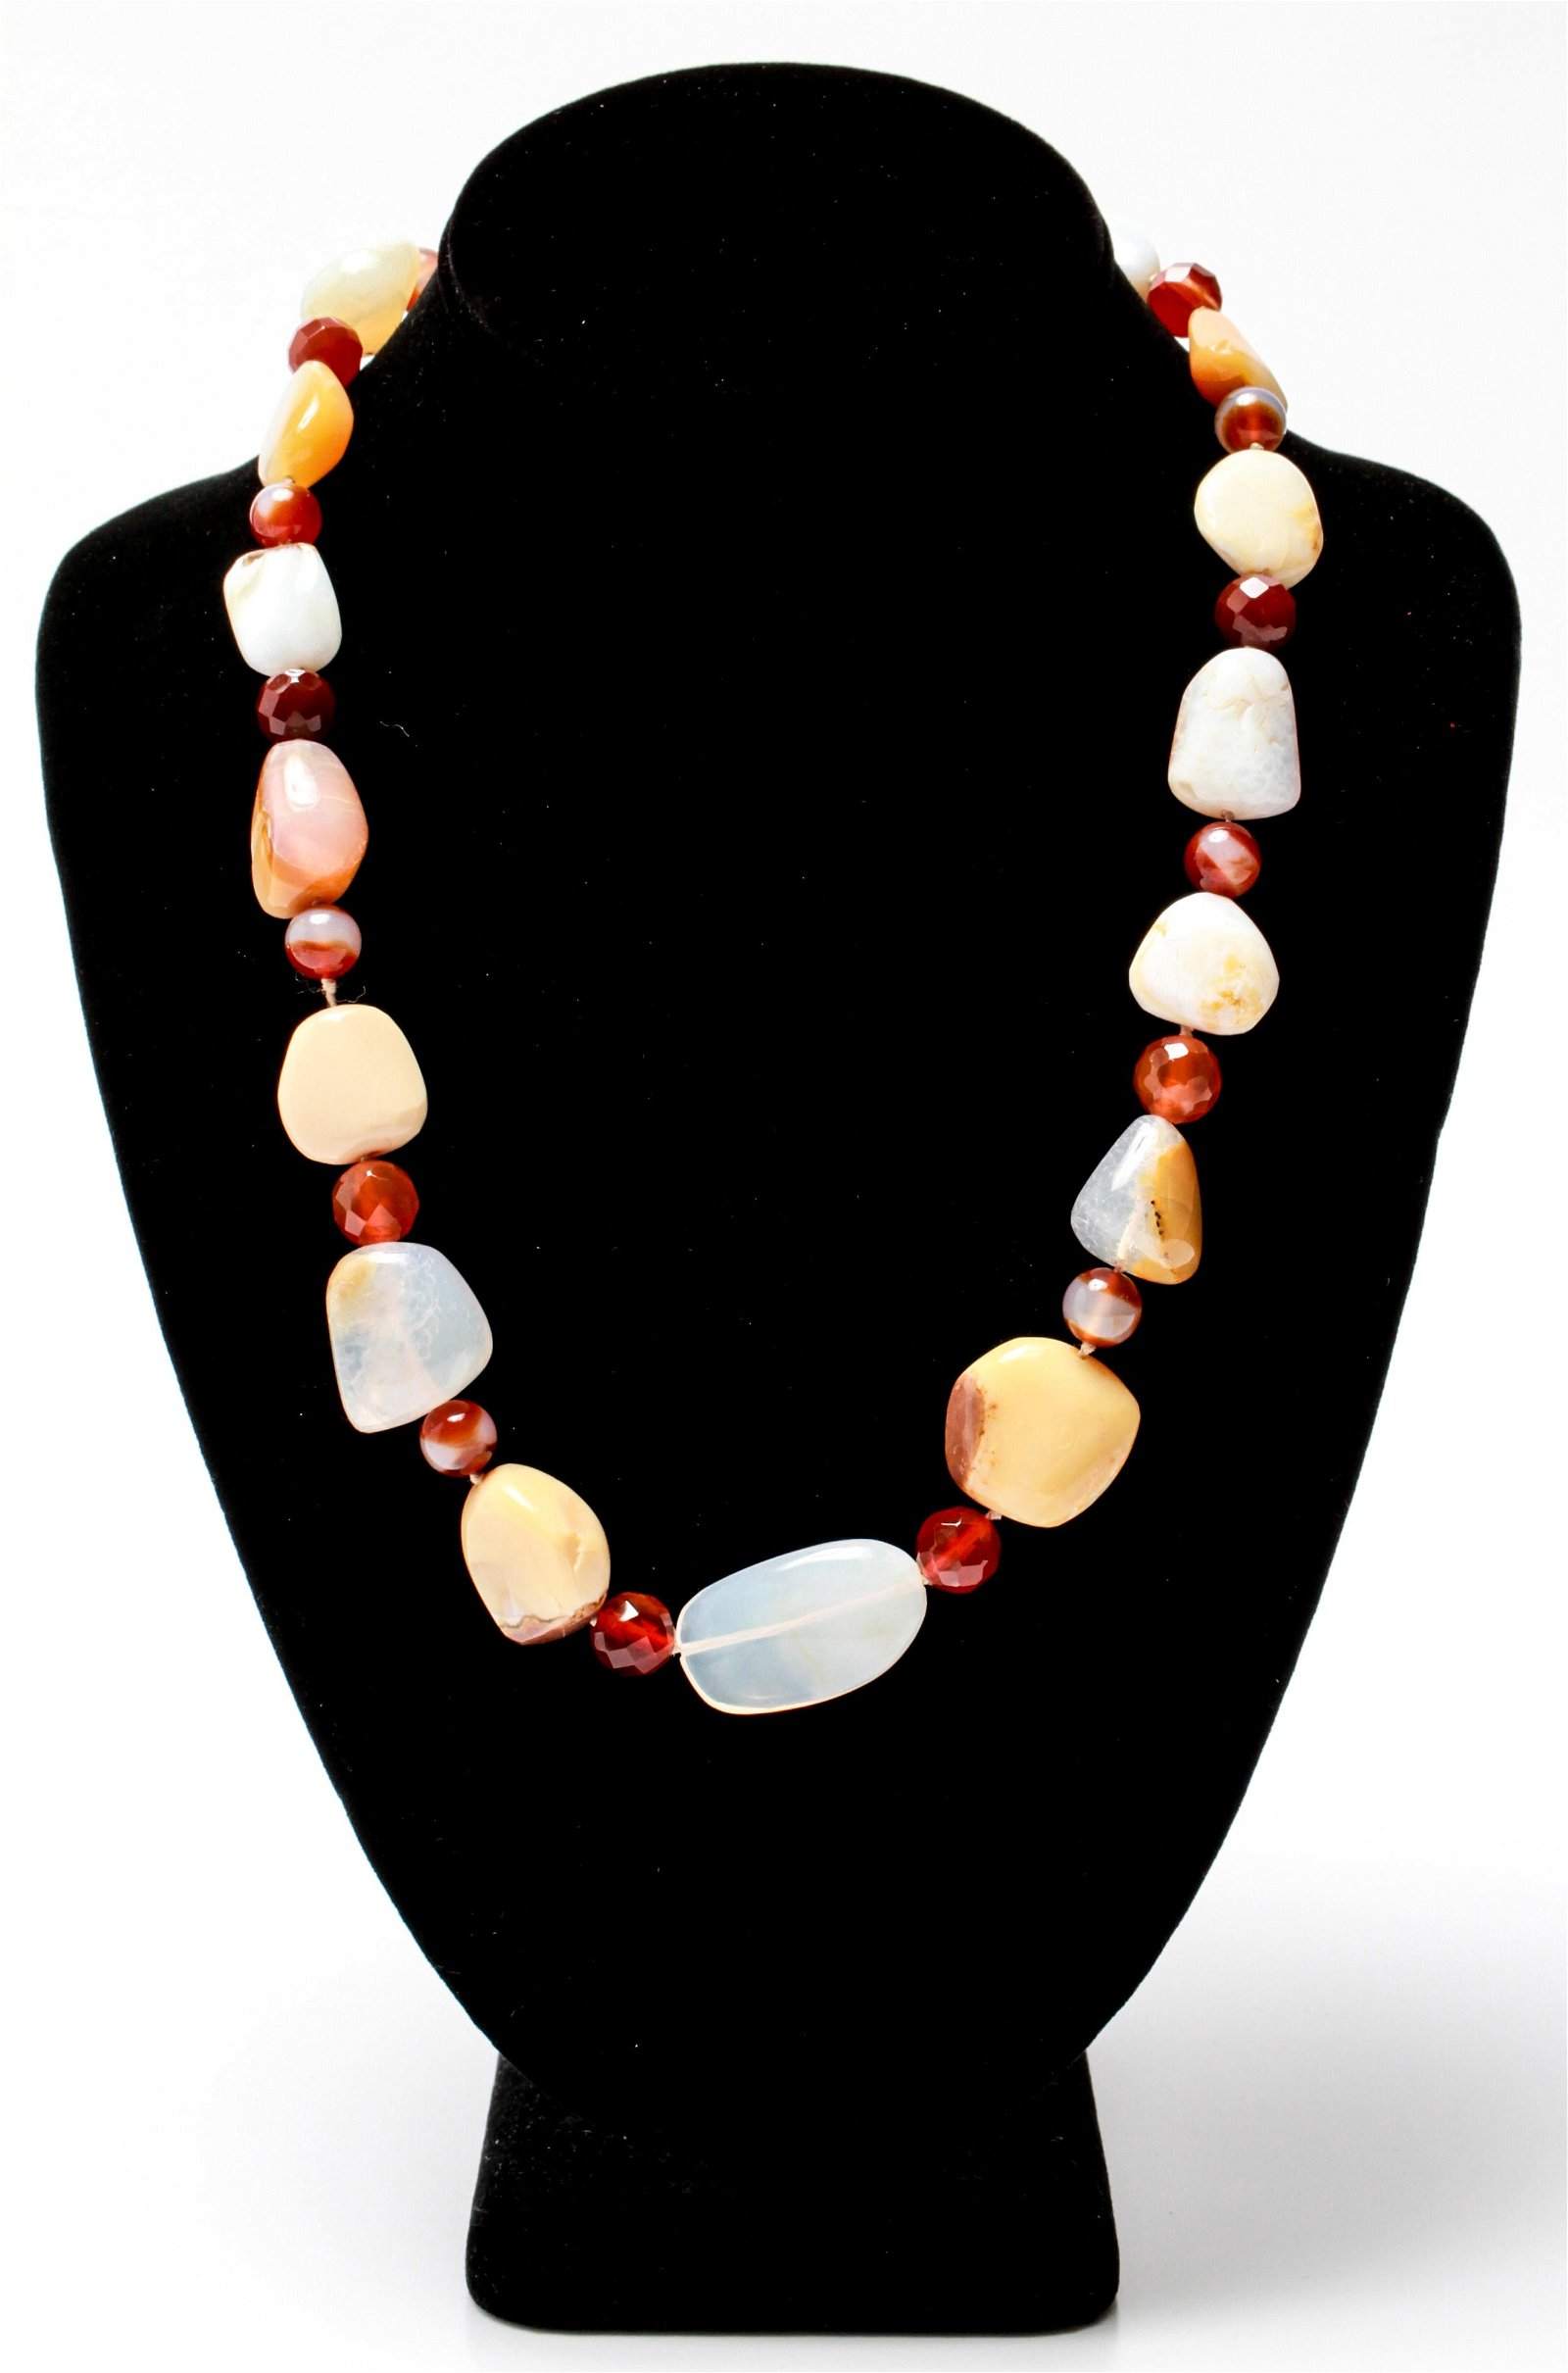 14K Gold & Carnelian, Agate & Quartz Necklace